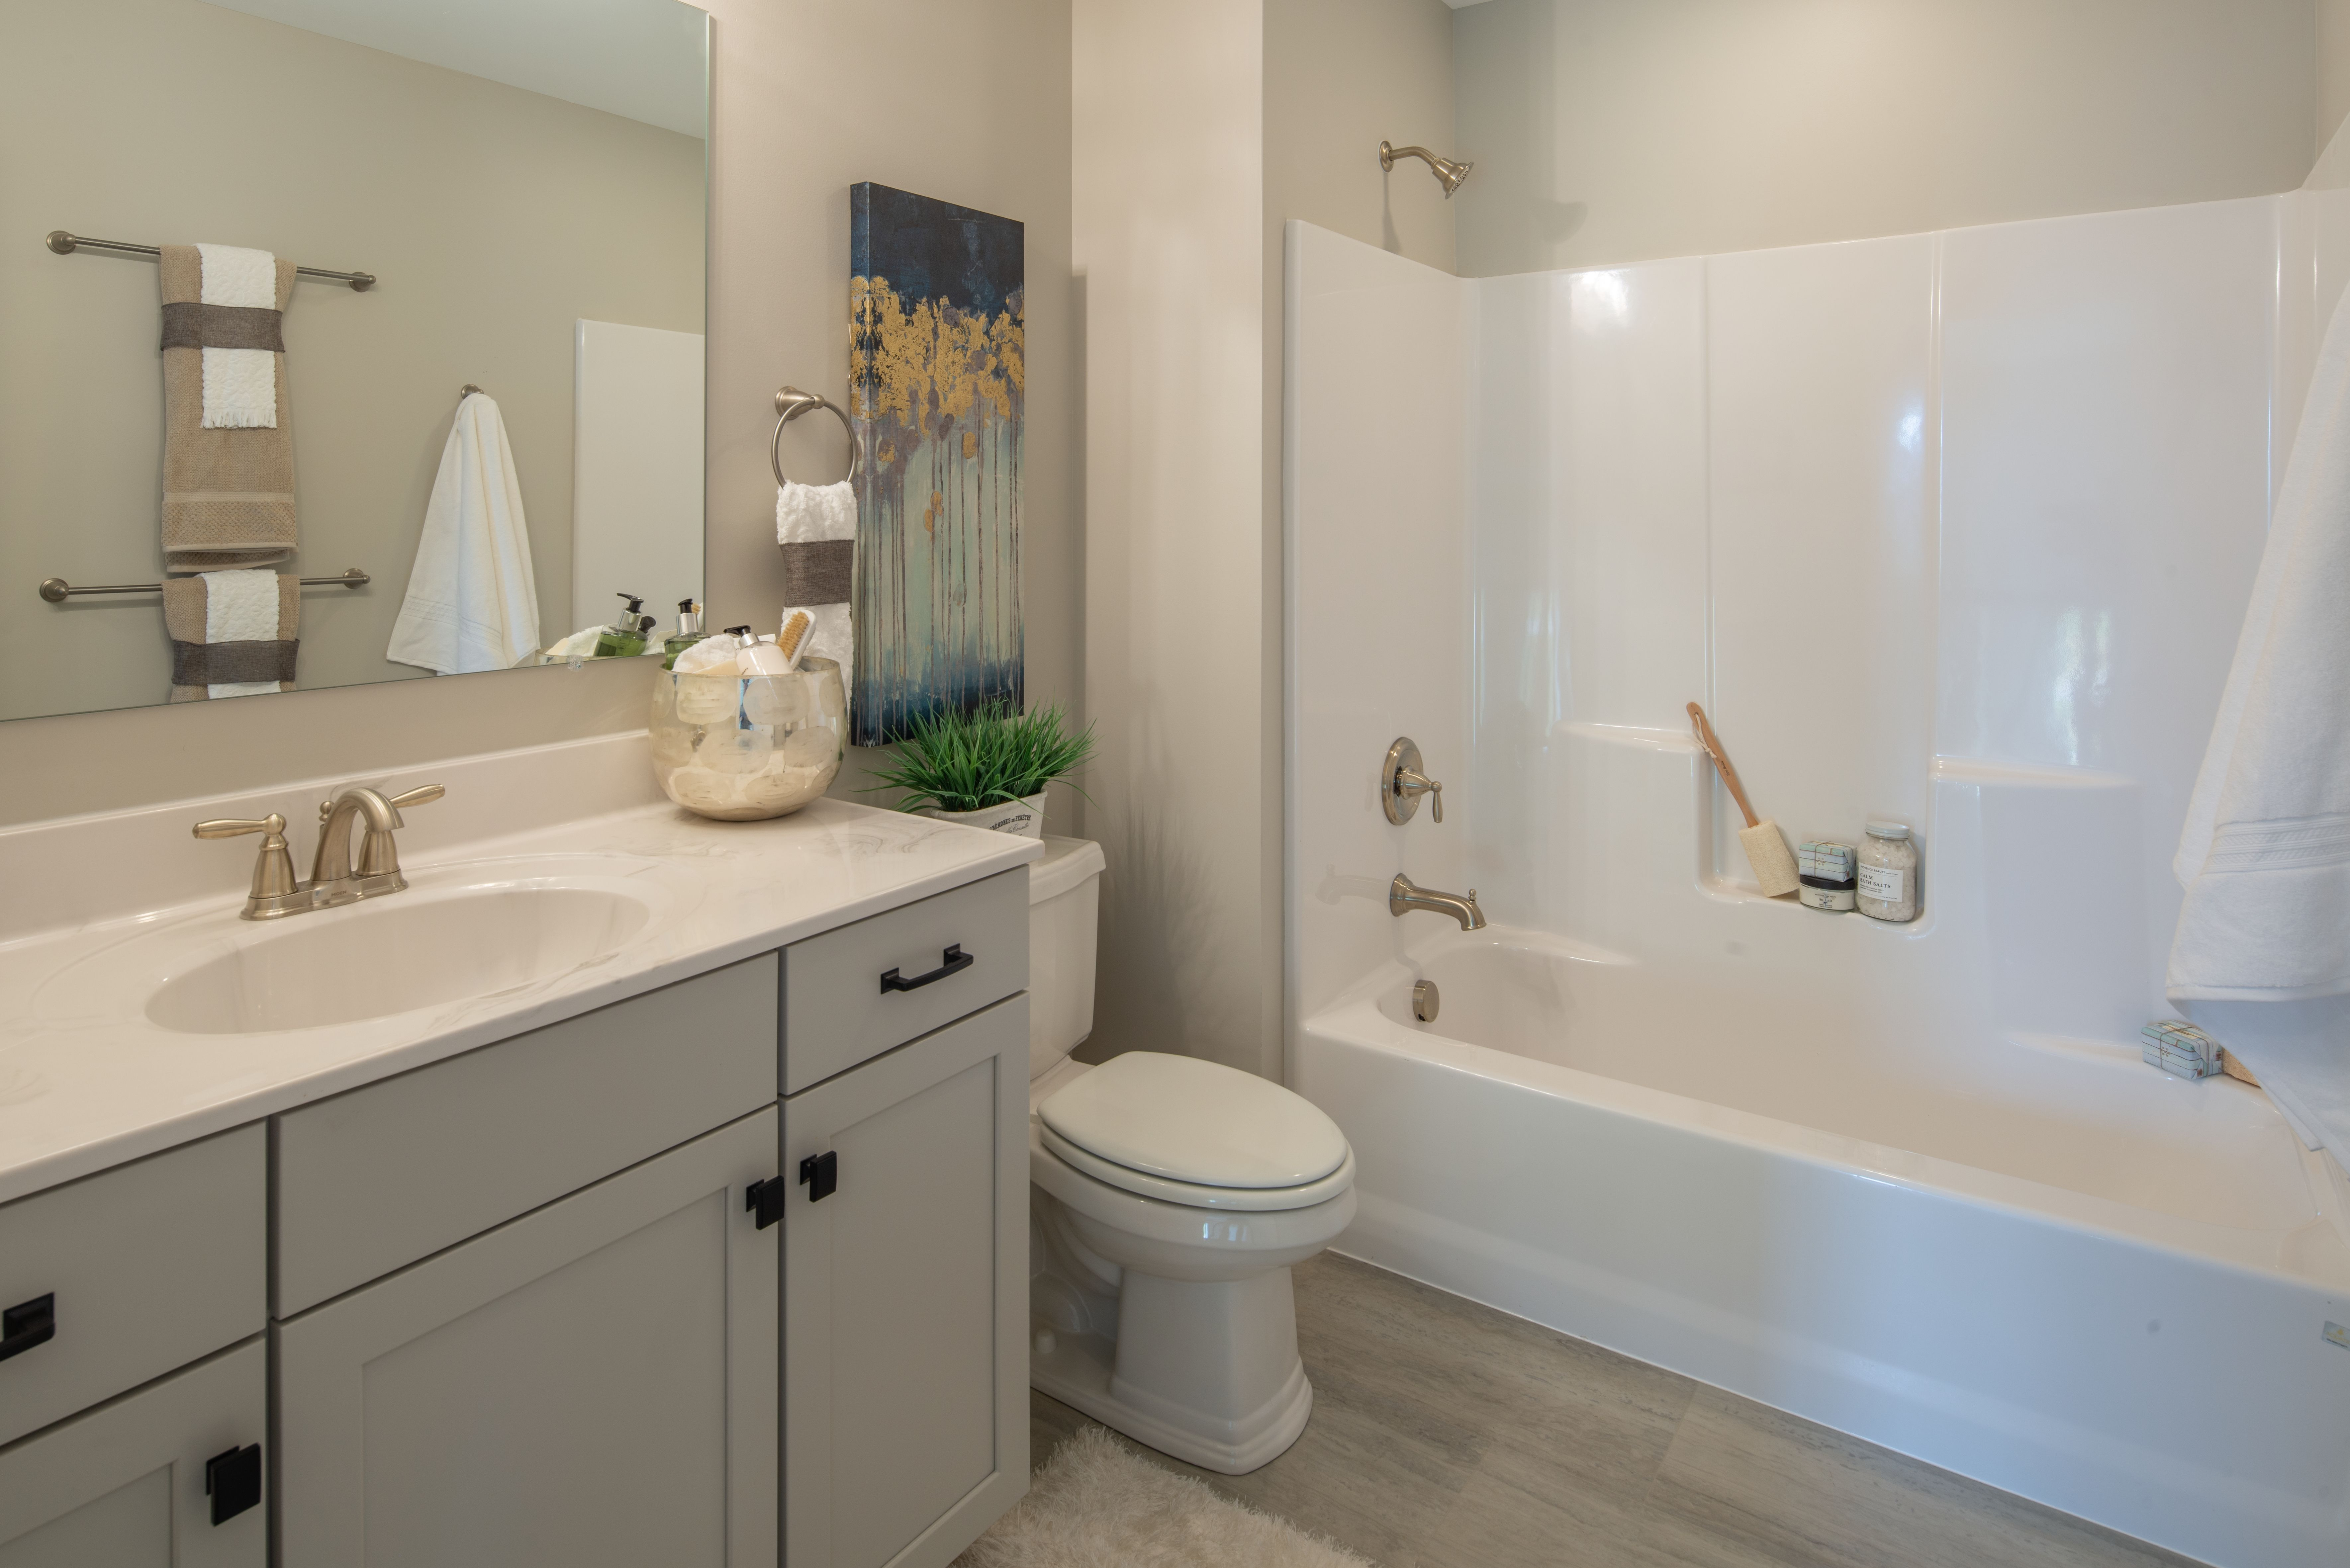 Bathroom featured in the Addison Vintage By Keystone Custom Homes in York, PA